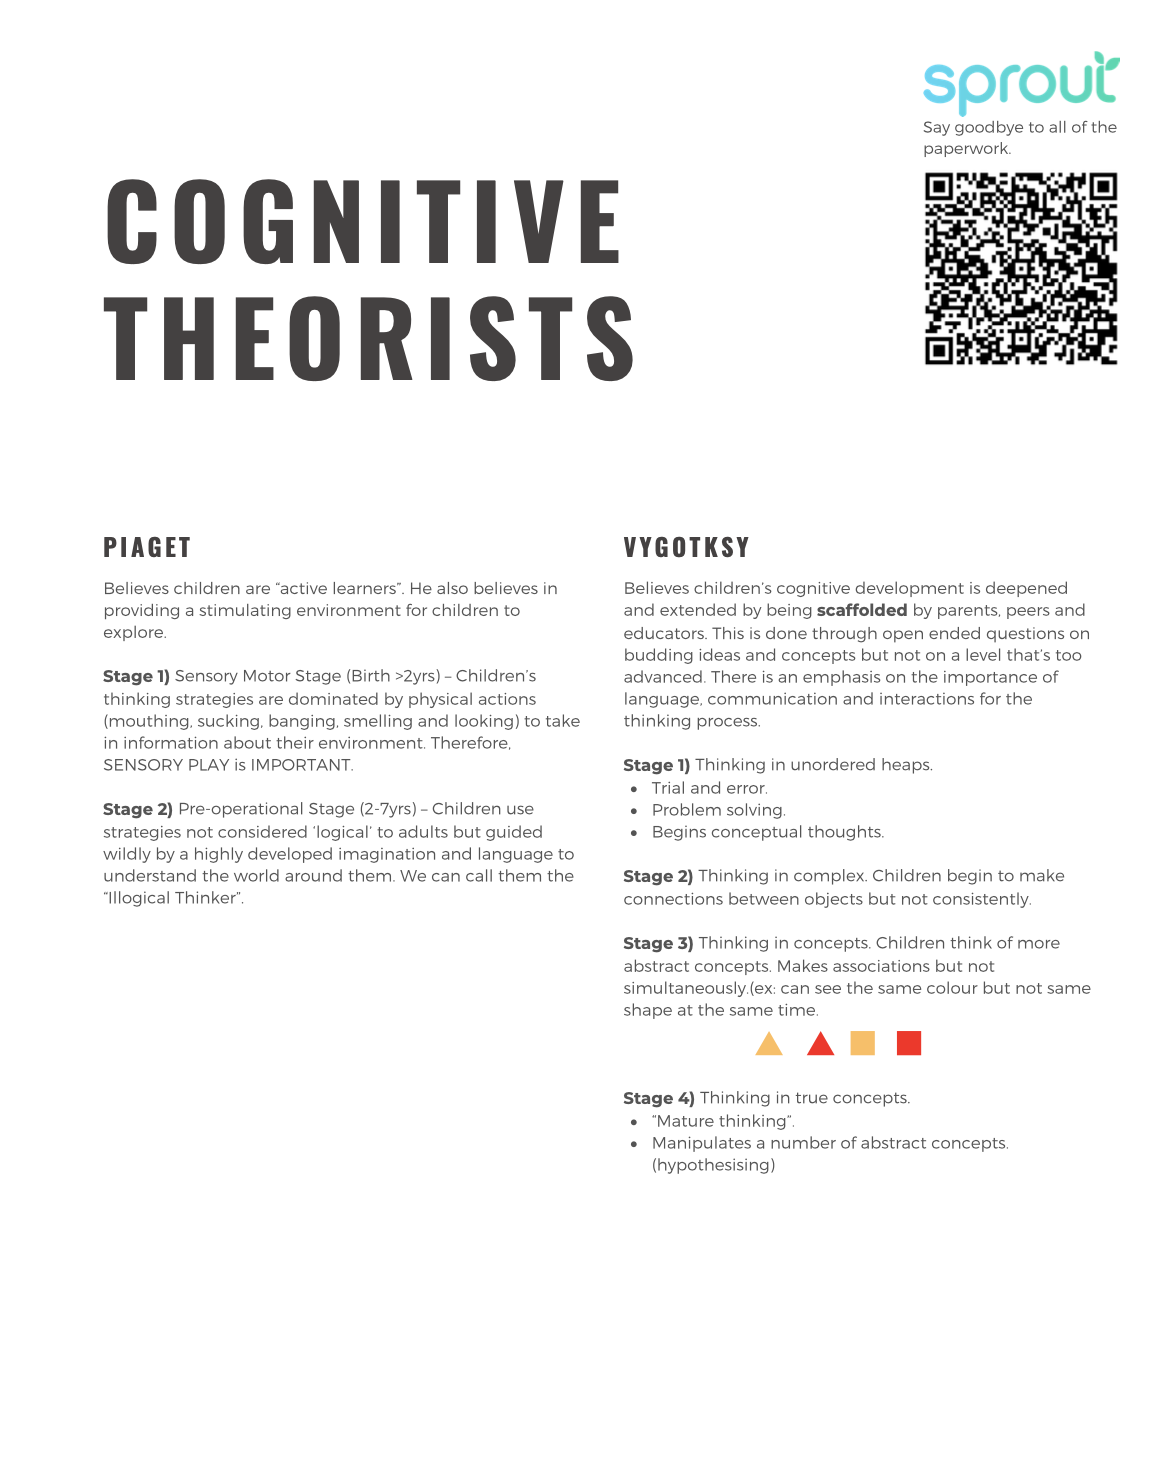 Theorists in early education; cognitive theorists